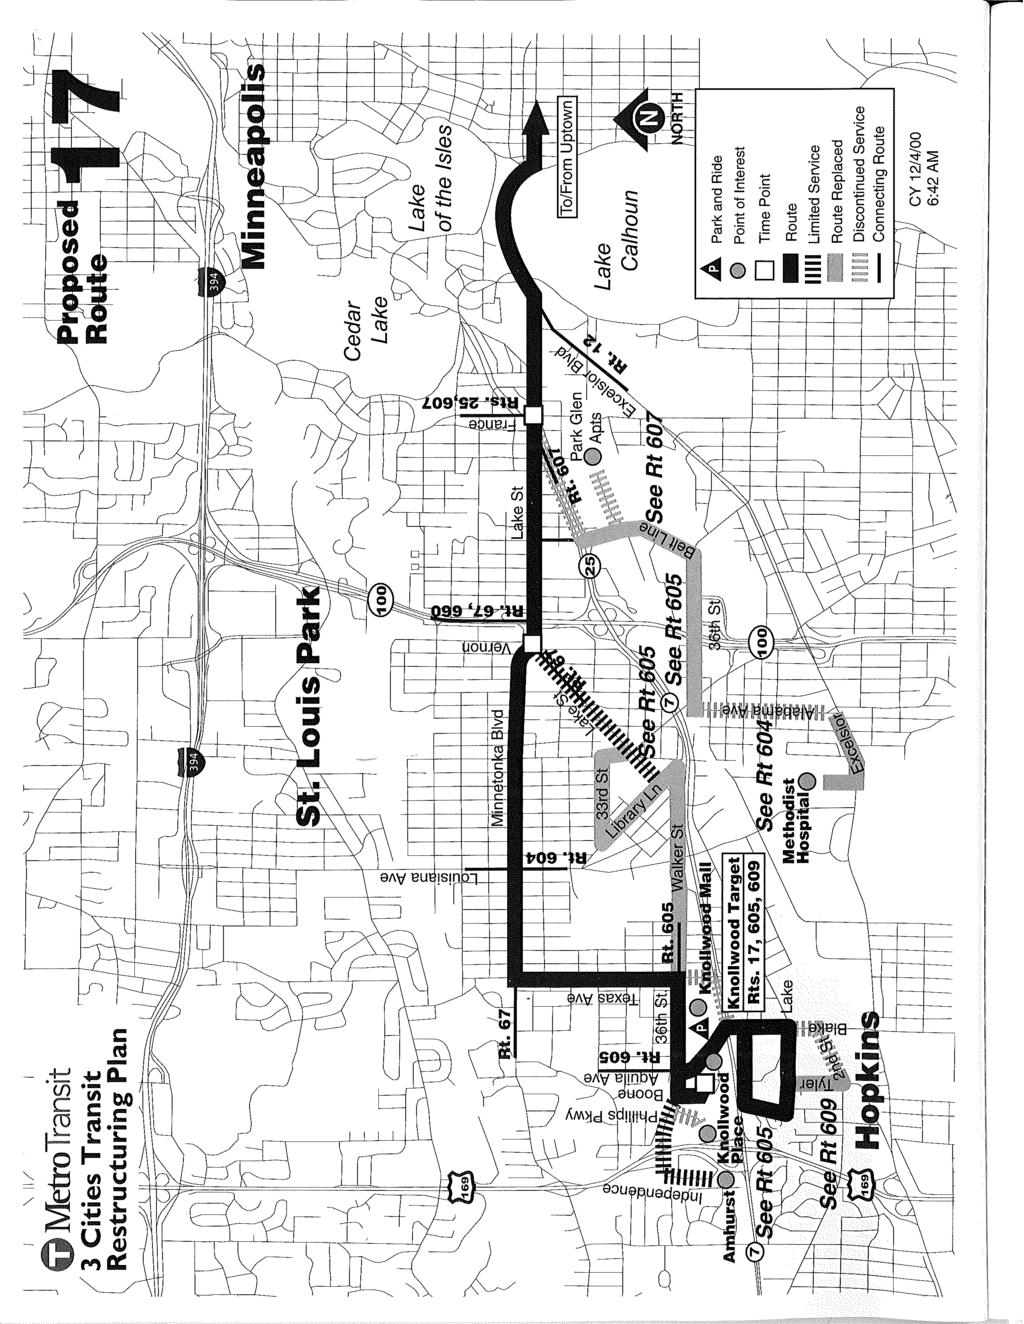 J '\ 11/ _ MetroTransit 3 Cities Transit Restructuring Plan Lake Calhoun A D _ 111I1 Park and Ride Point of